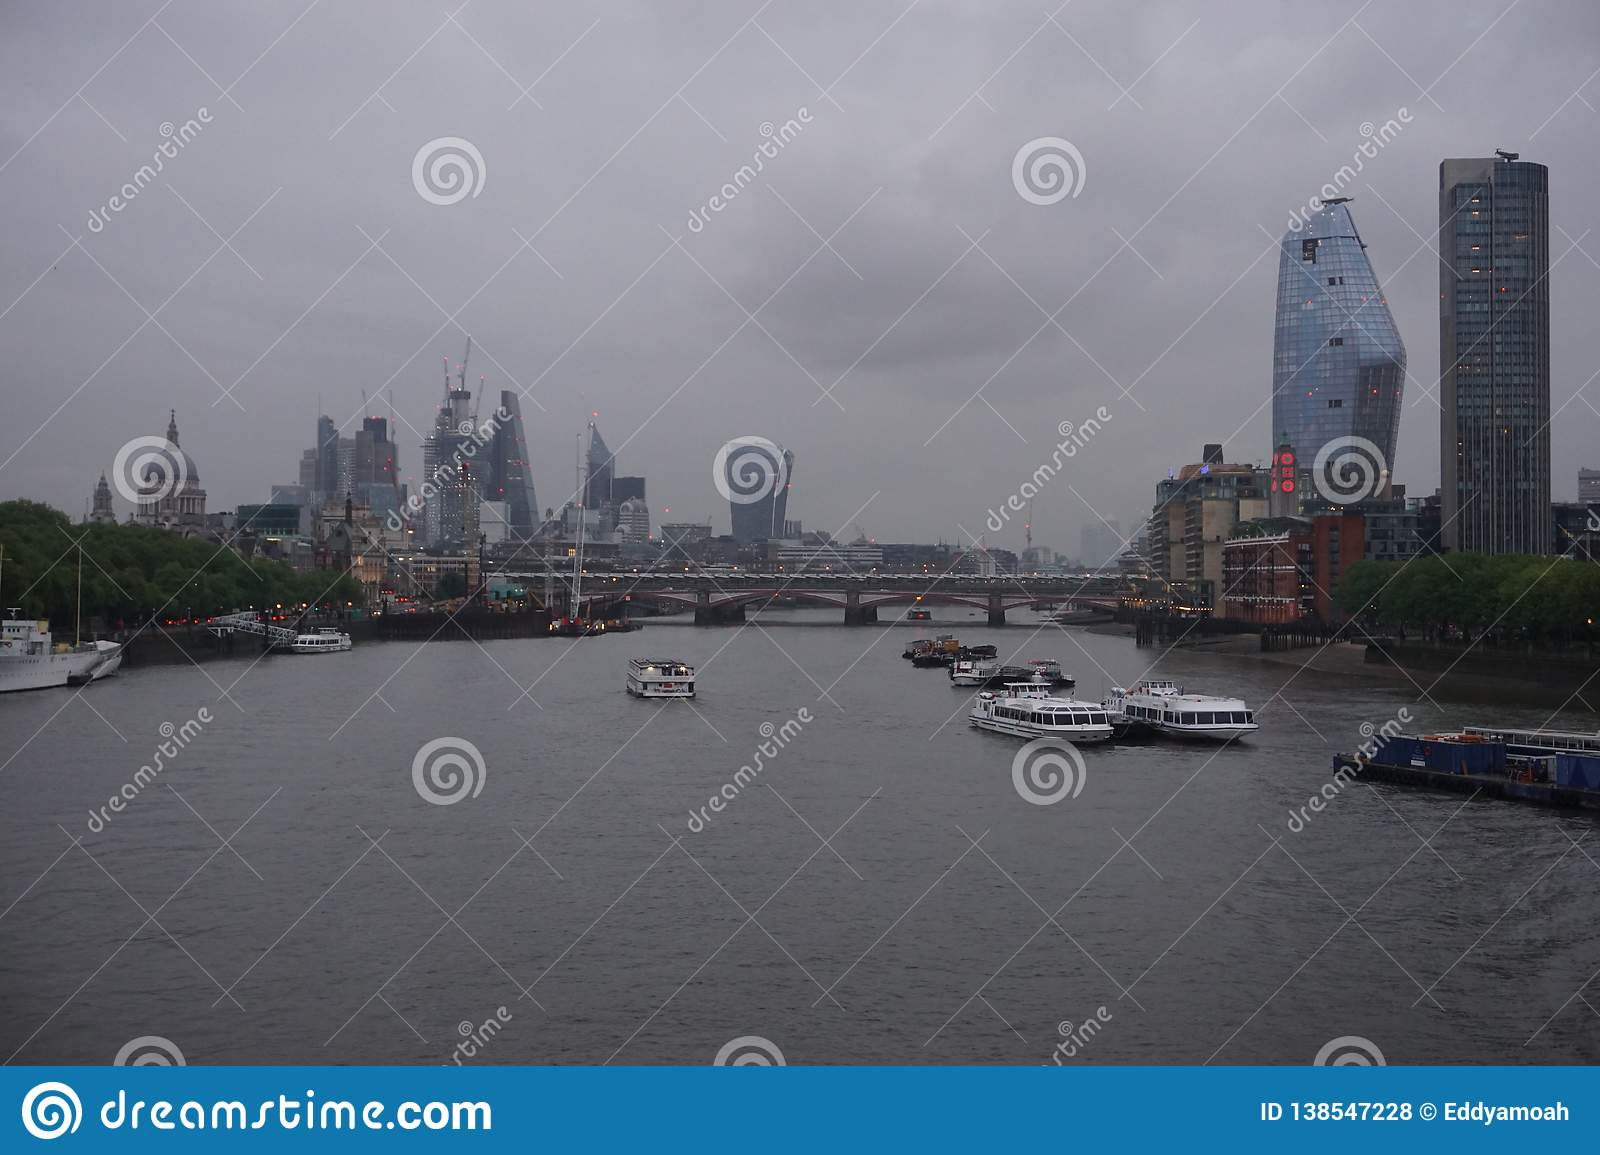 Capital-view: London skyline in a typical English weather.